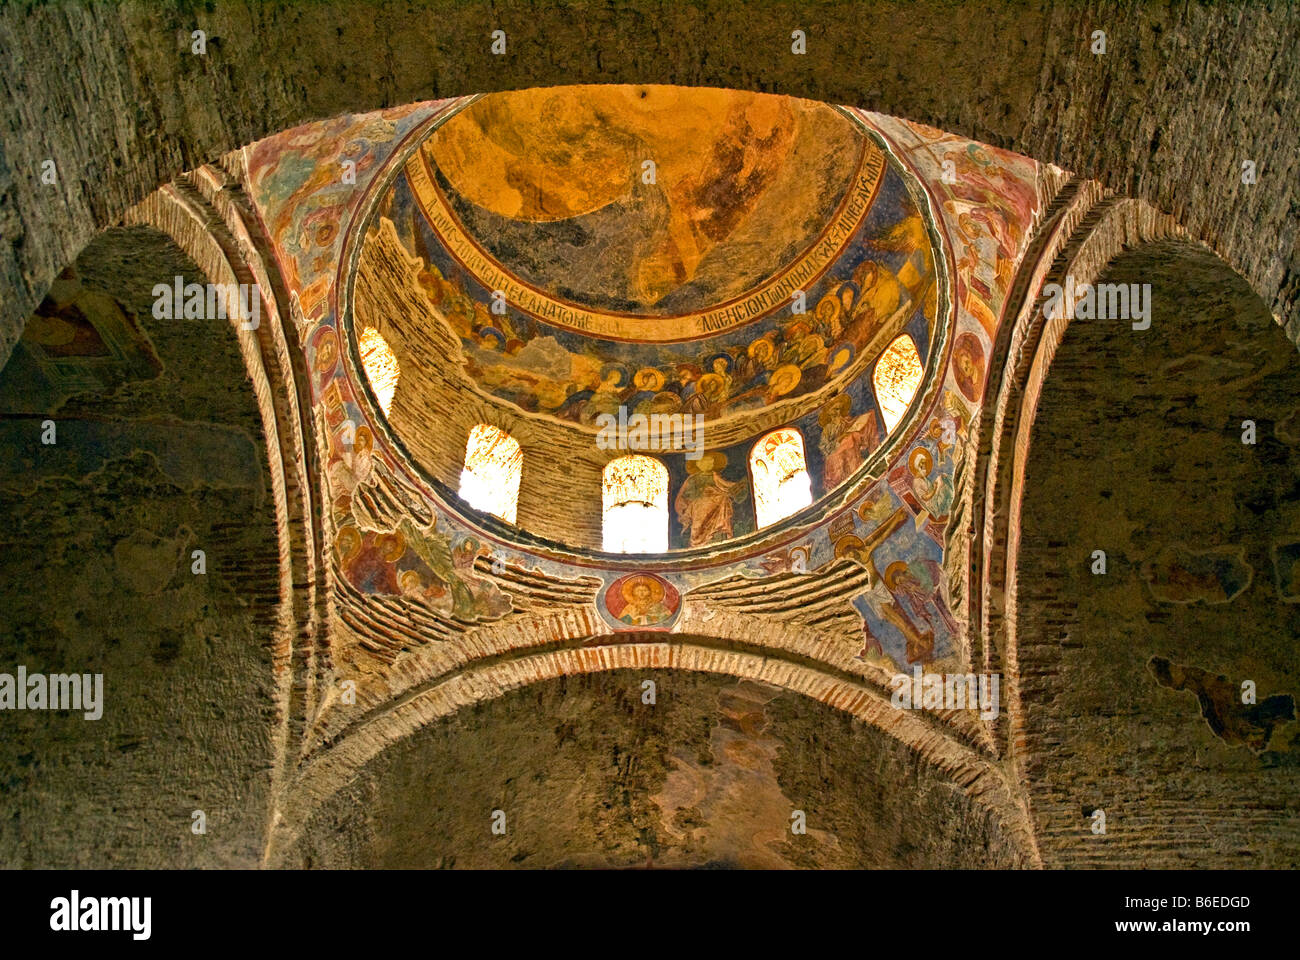 Trabzon's Aya Sofya (Church of the Holy Wisdom), Christian frescoes on vaulted ceiling and dome Stock Photo